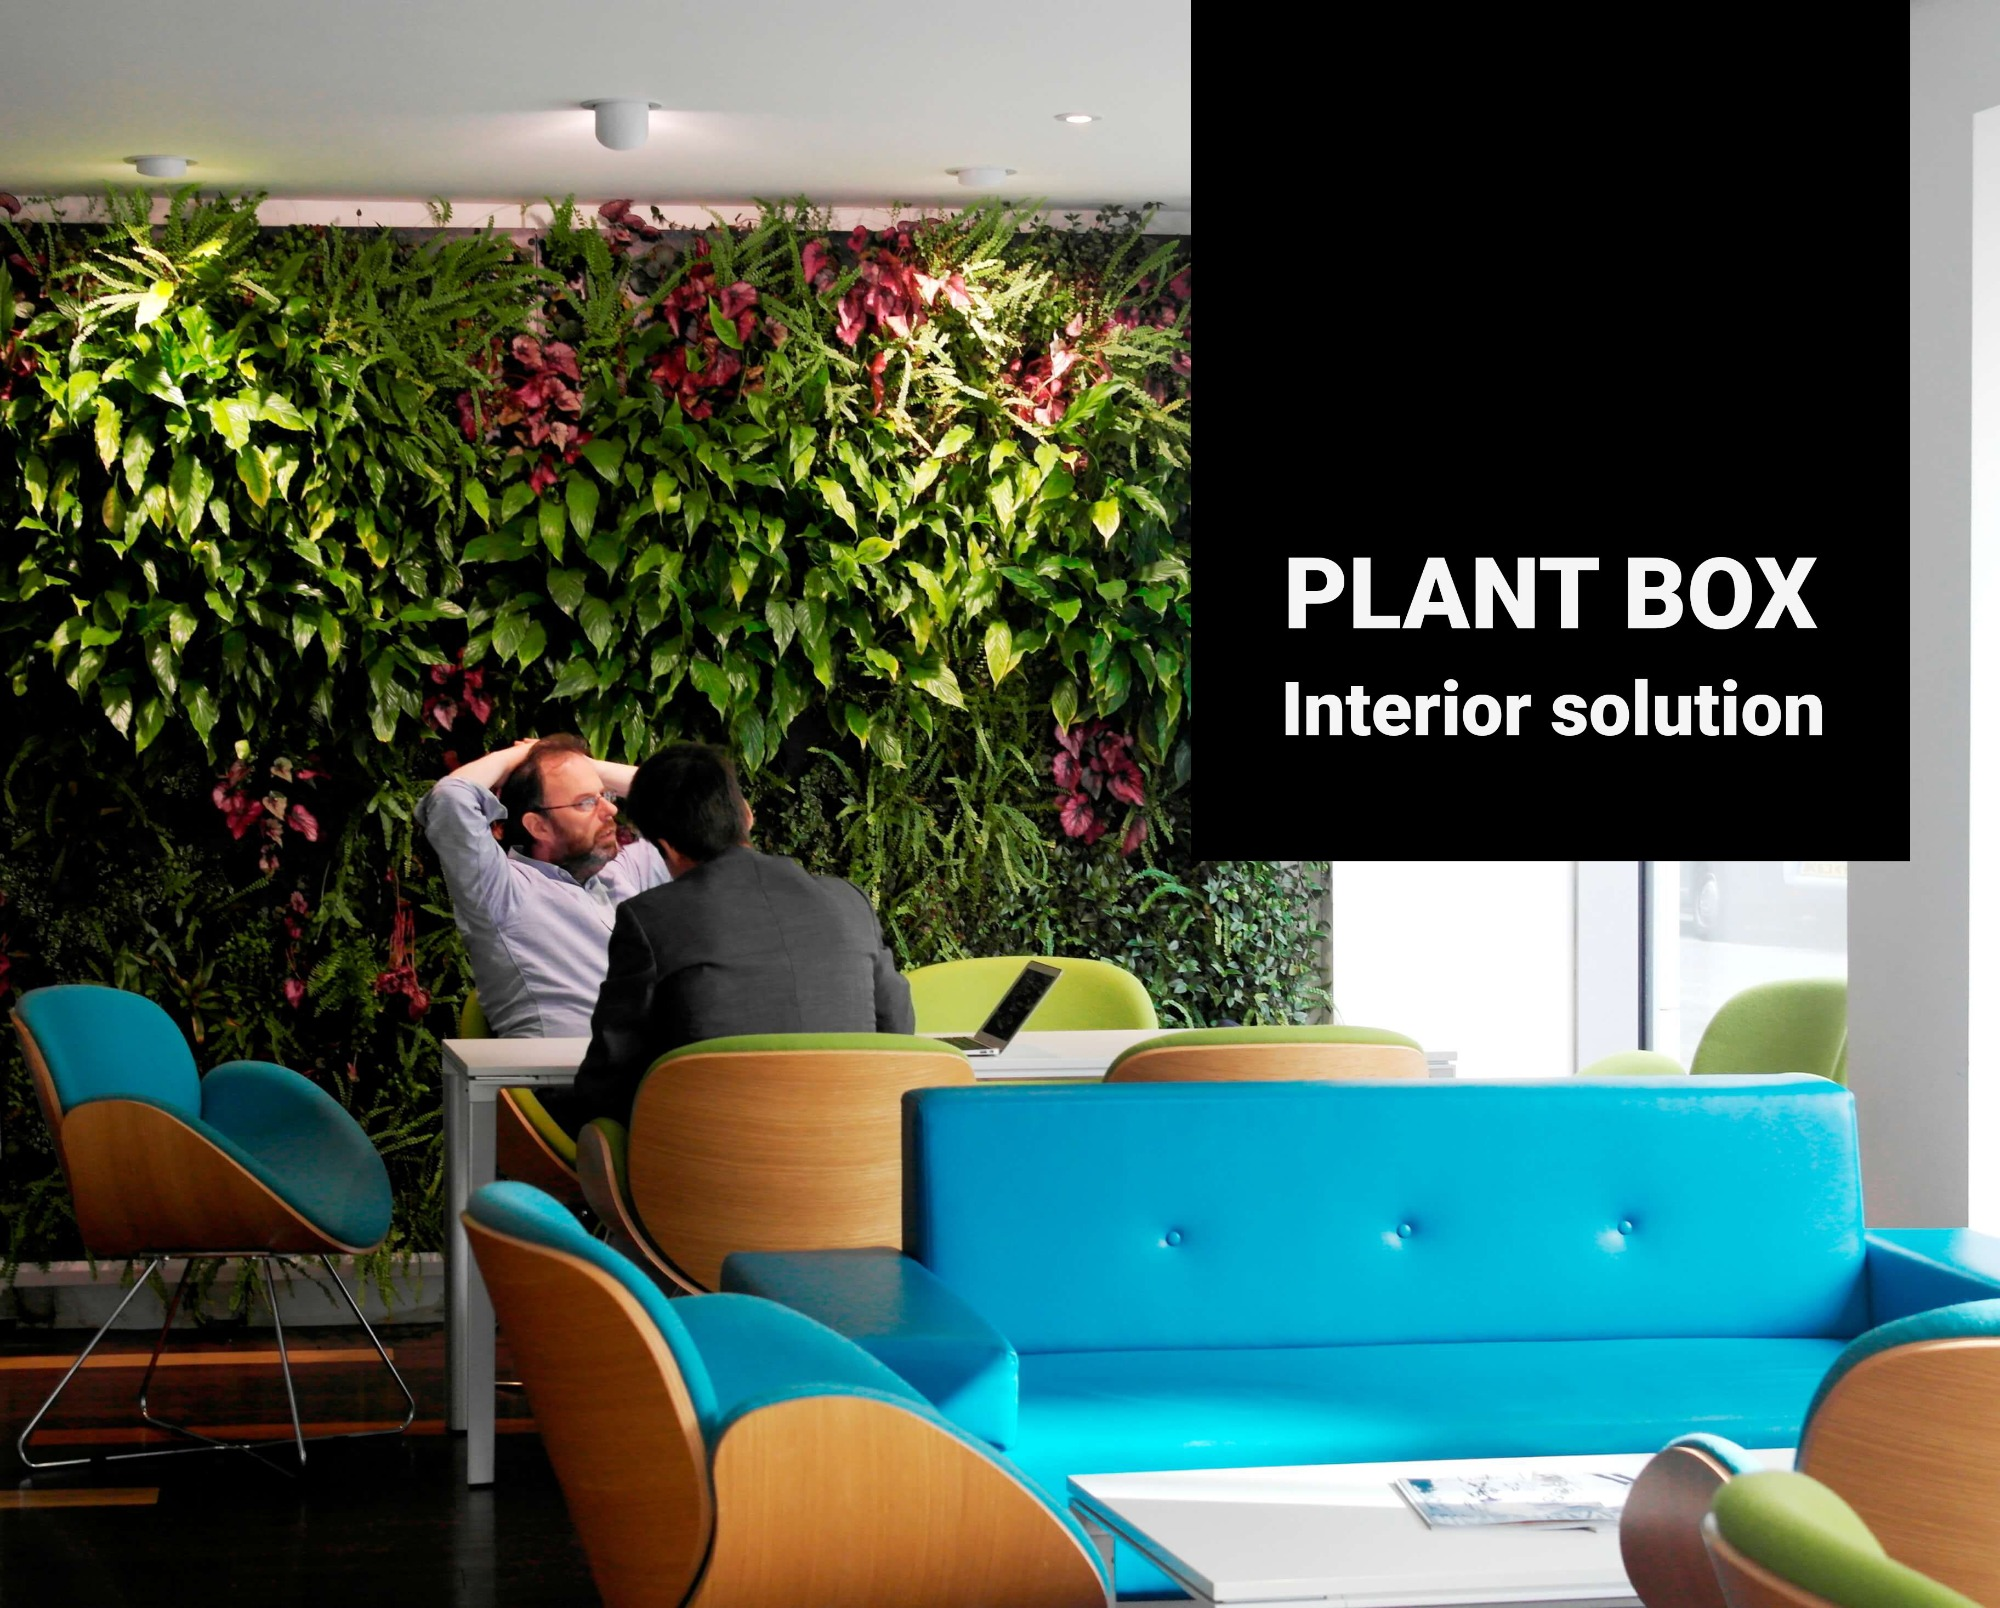 Interior living walls